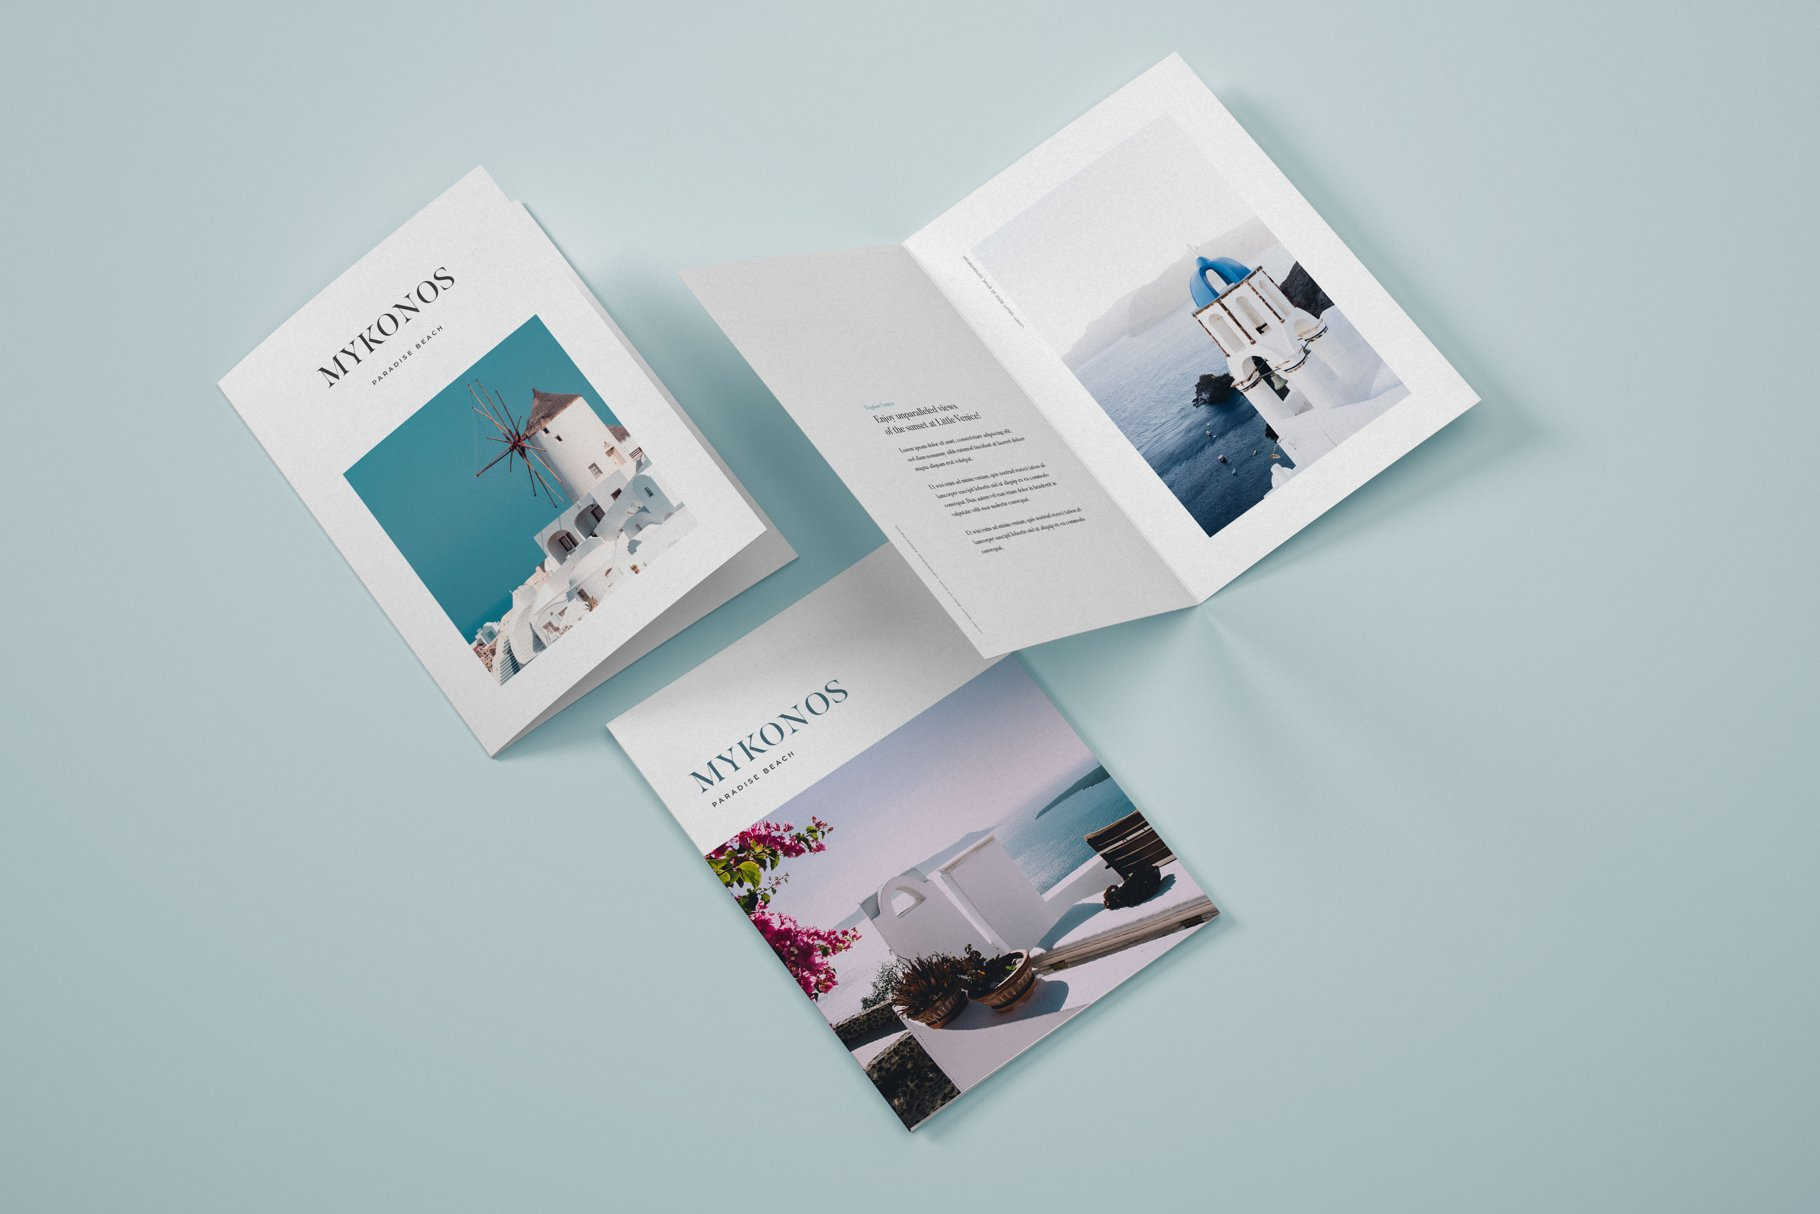 Vertical Bifold Brochure PSD Mockup Template with Overlay Shadow